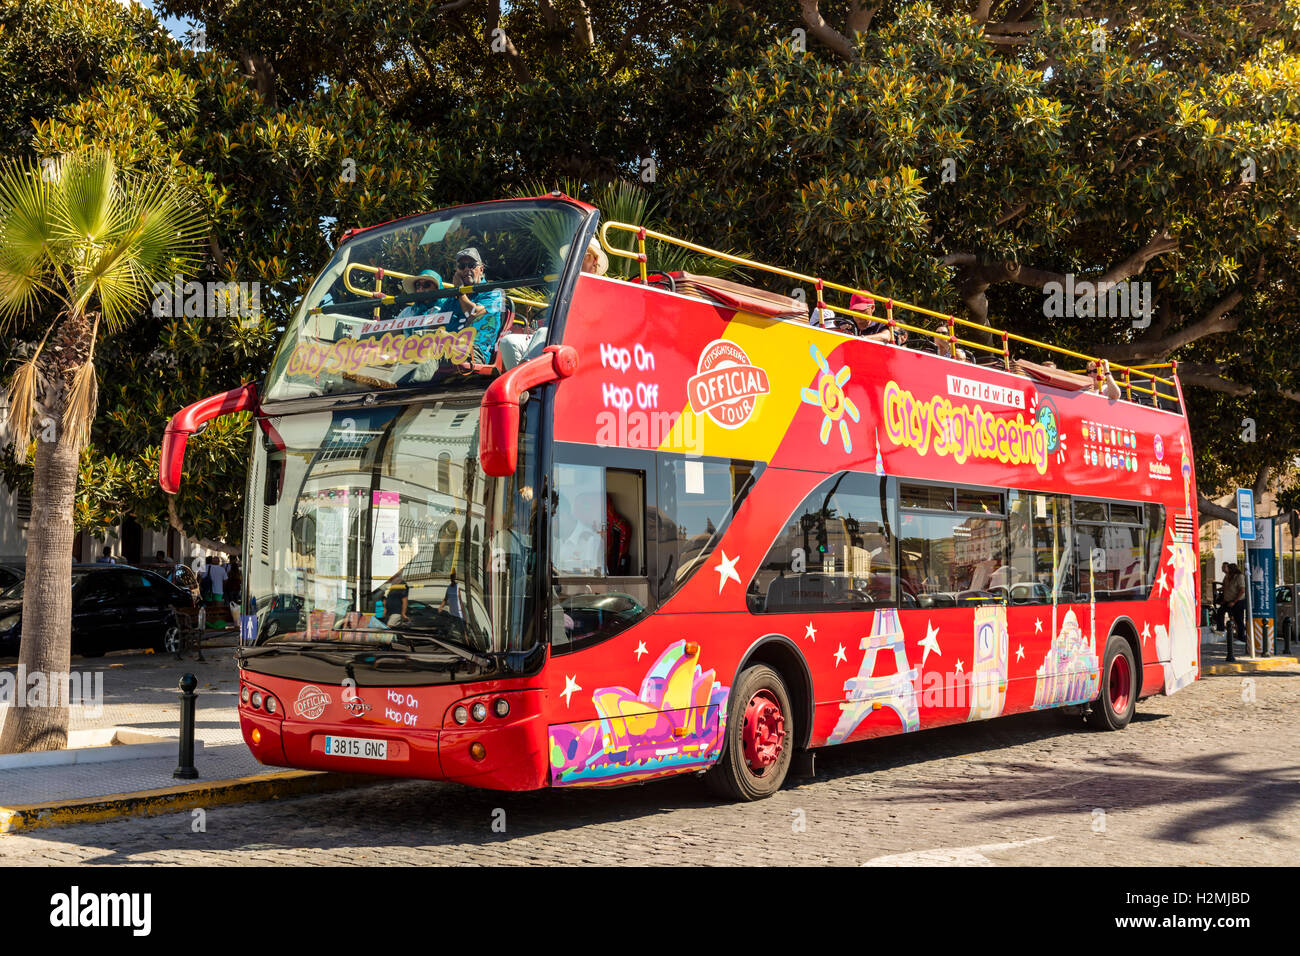 Brightly decorated sightseeing double-decker open top bus in Cadiz takes visitors to all the major tourist attractions. - Stock Image